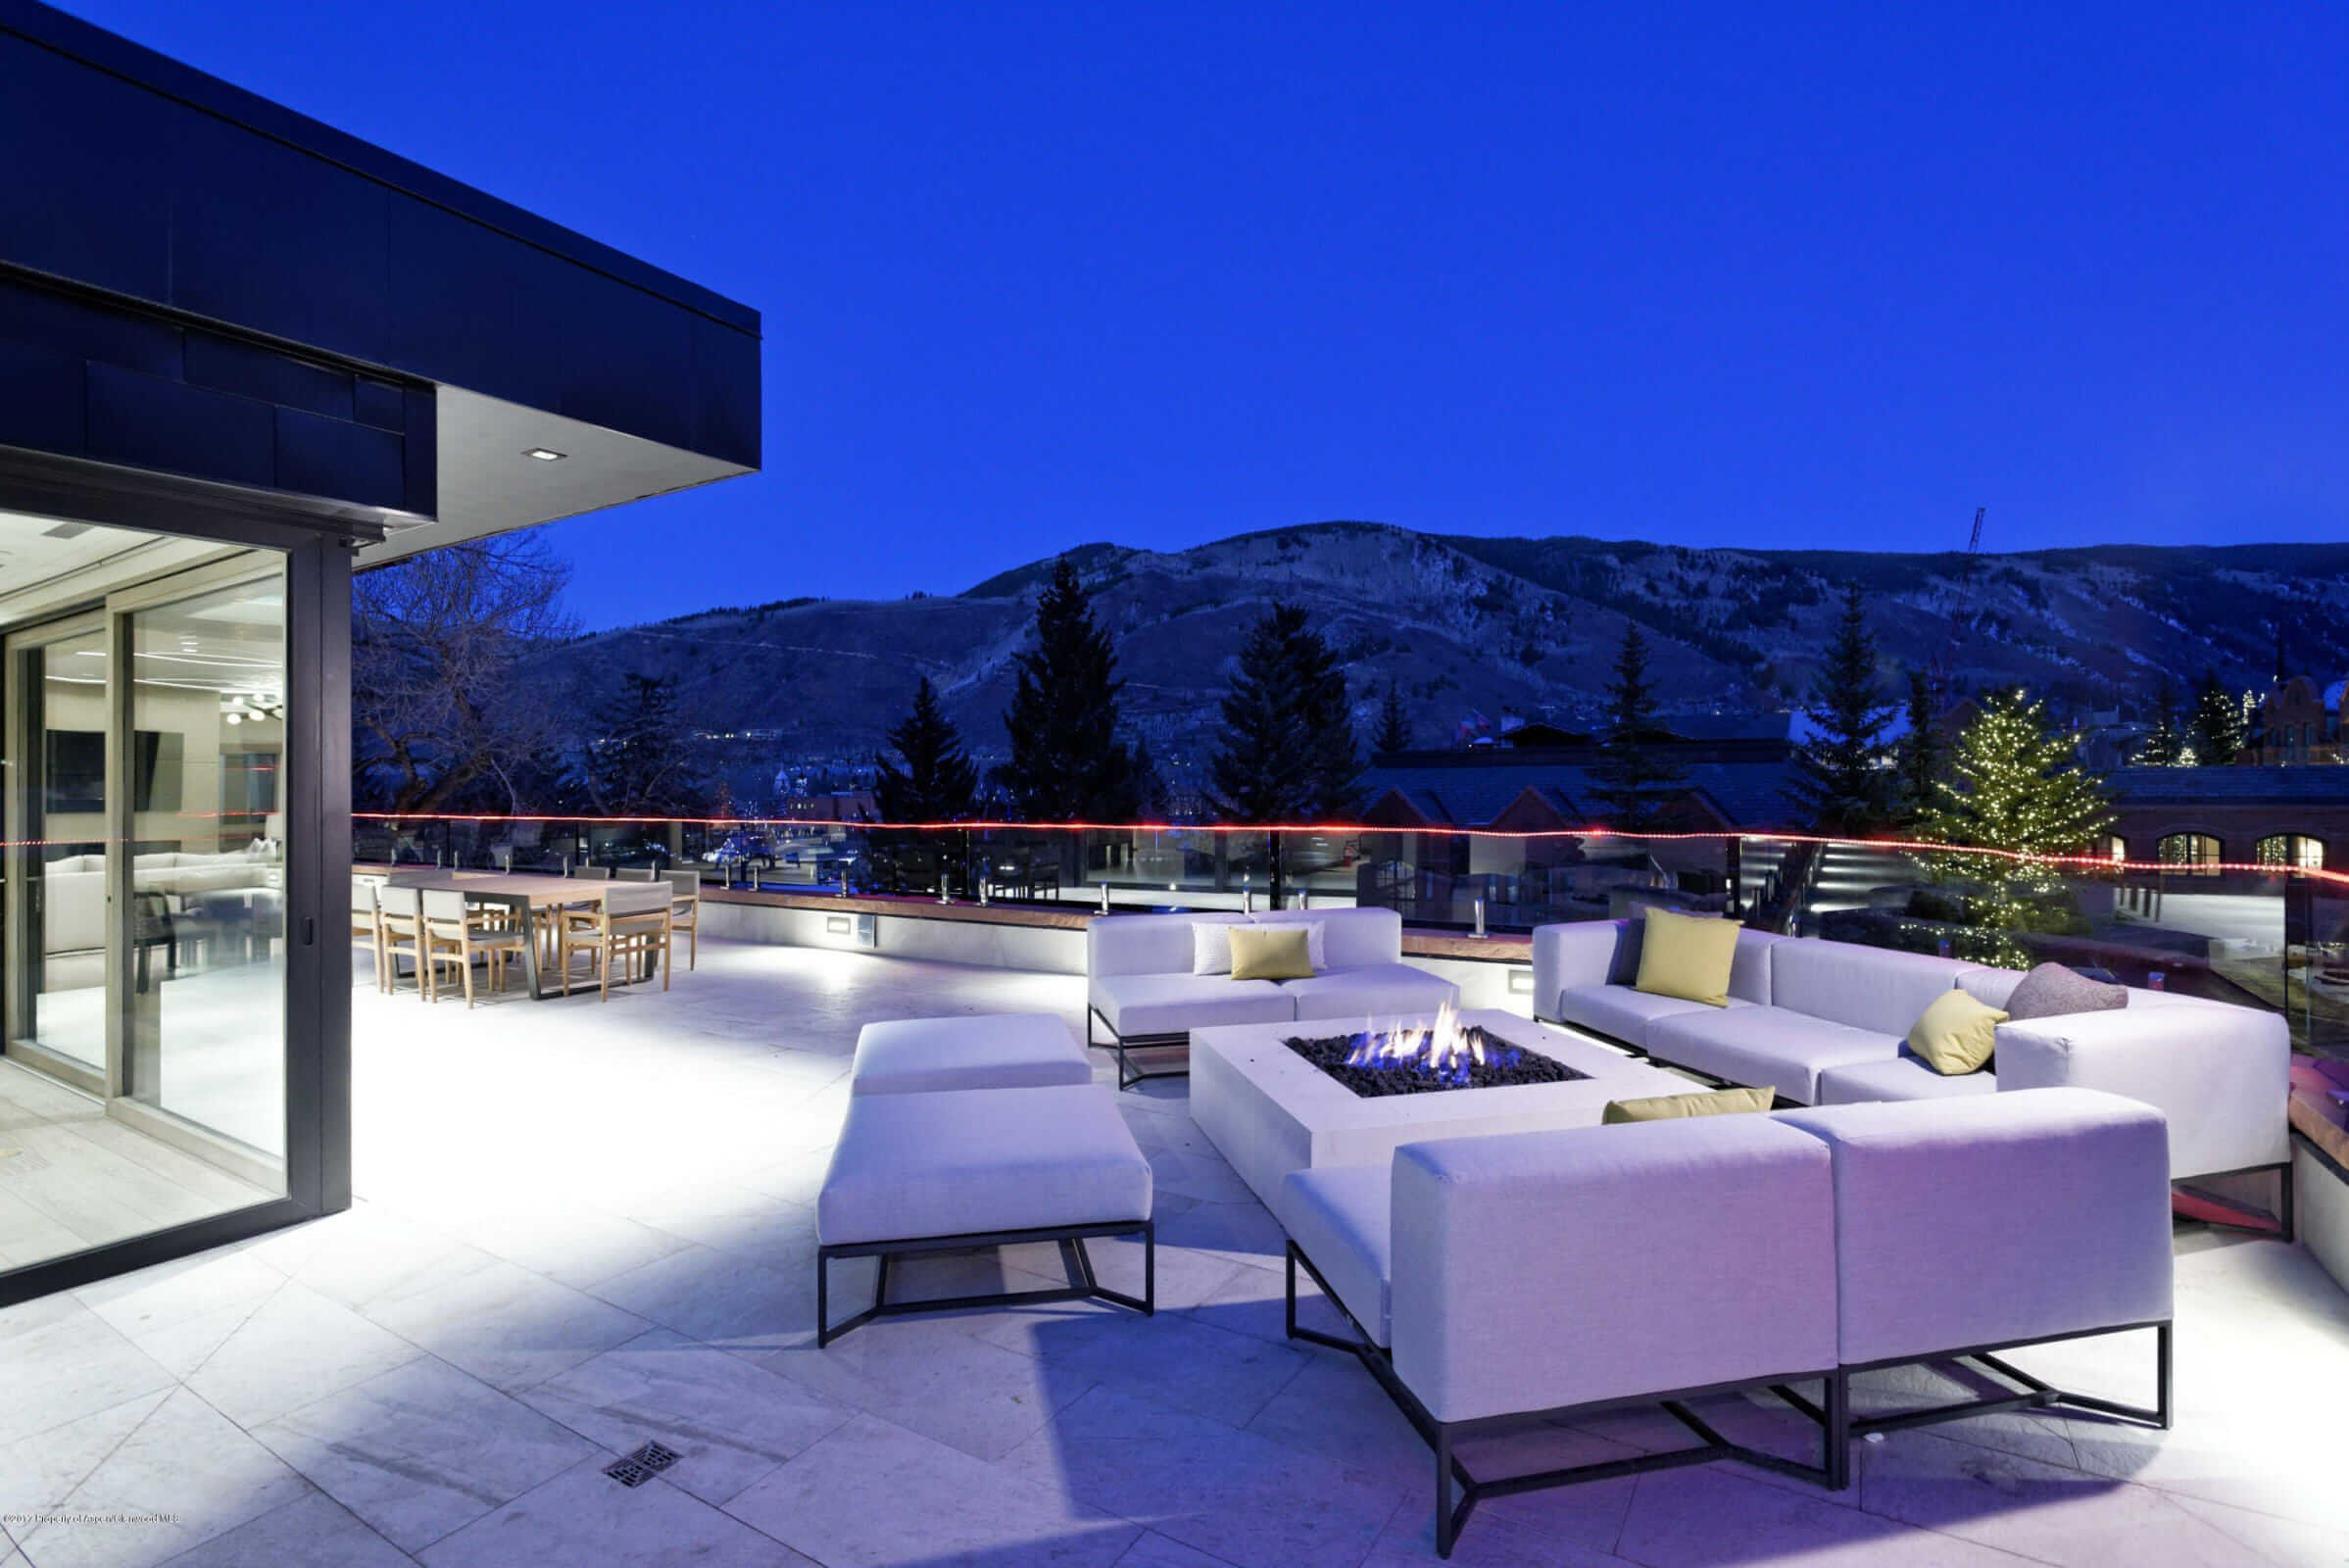 Competition in the $5,000 – $10,000 Per Sq Ft Downtown Aspen Penthouse Market Heats Up Image